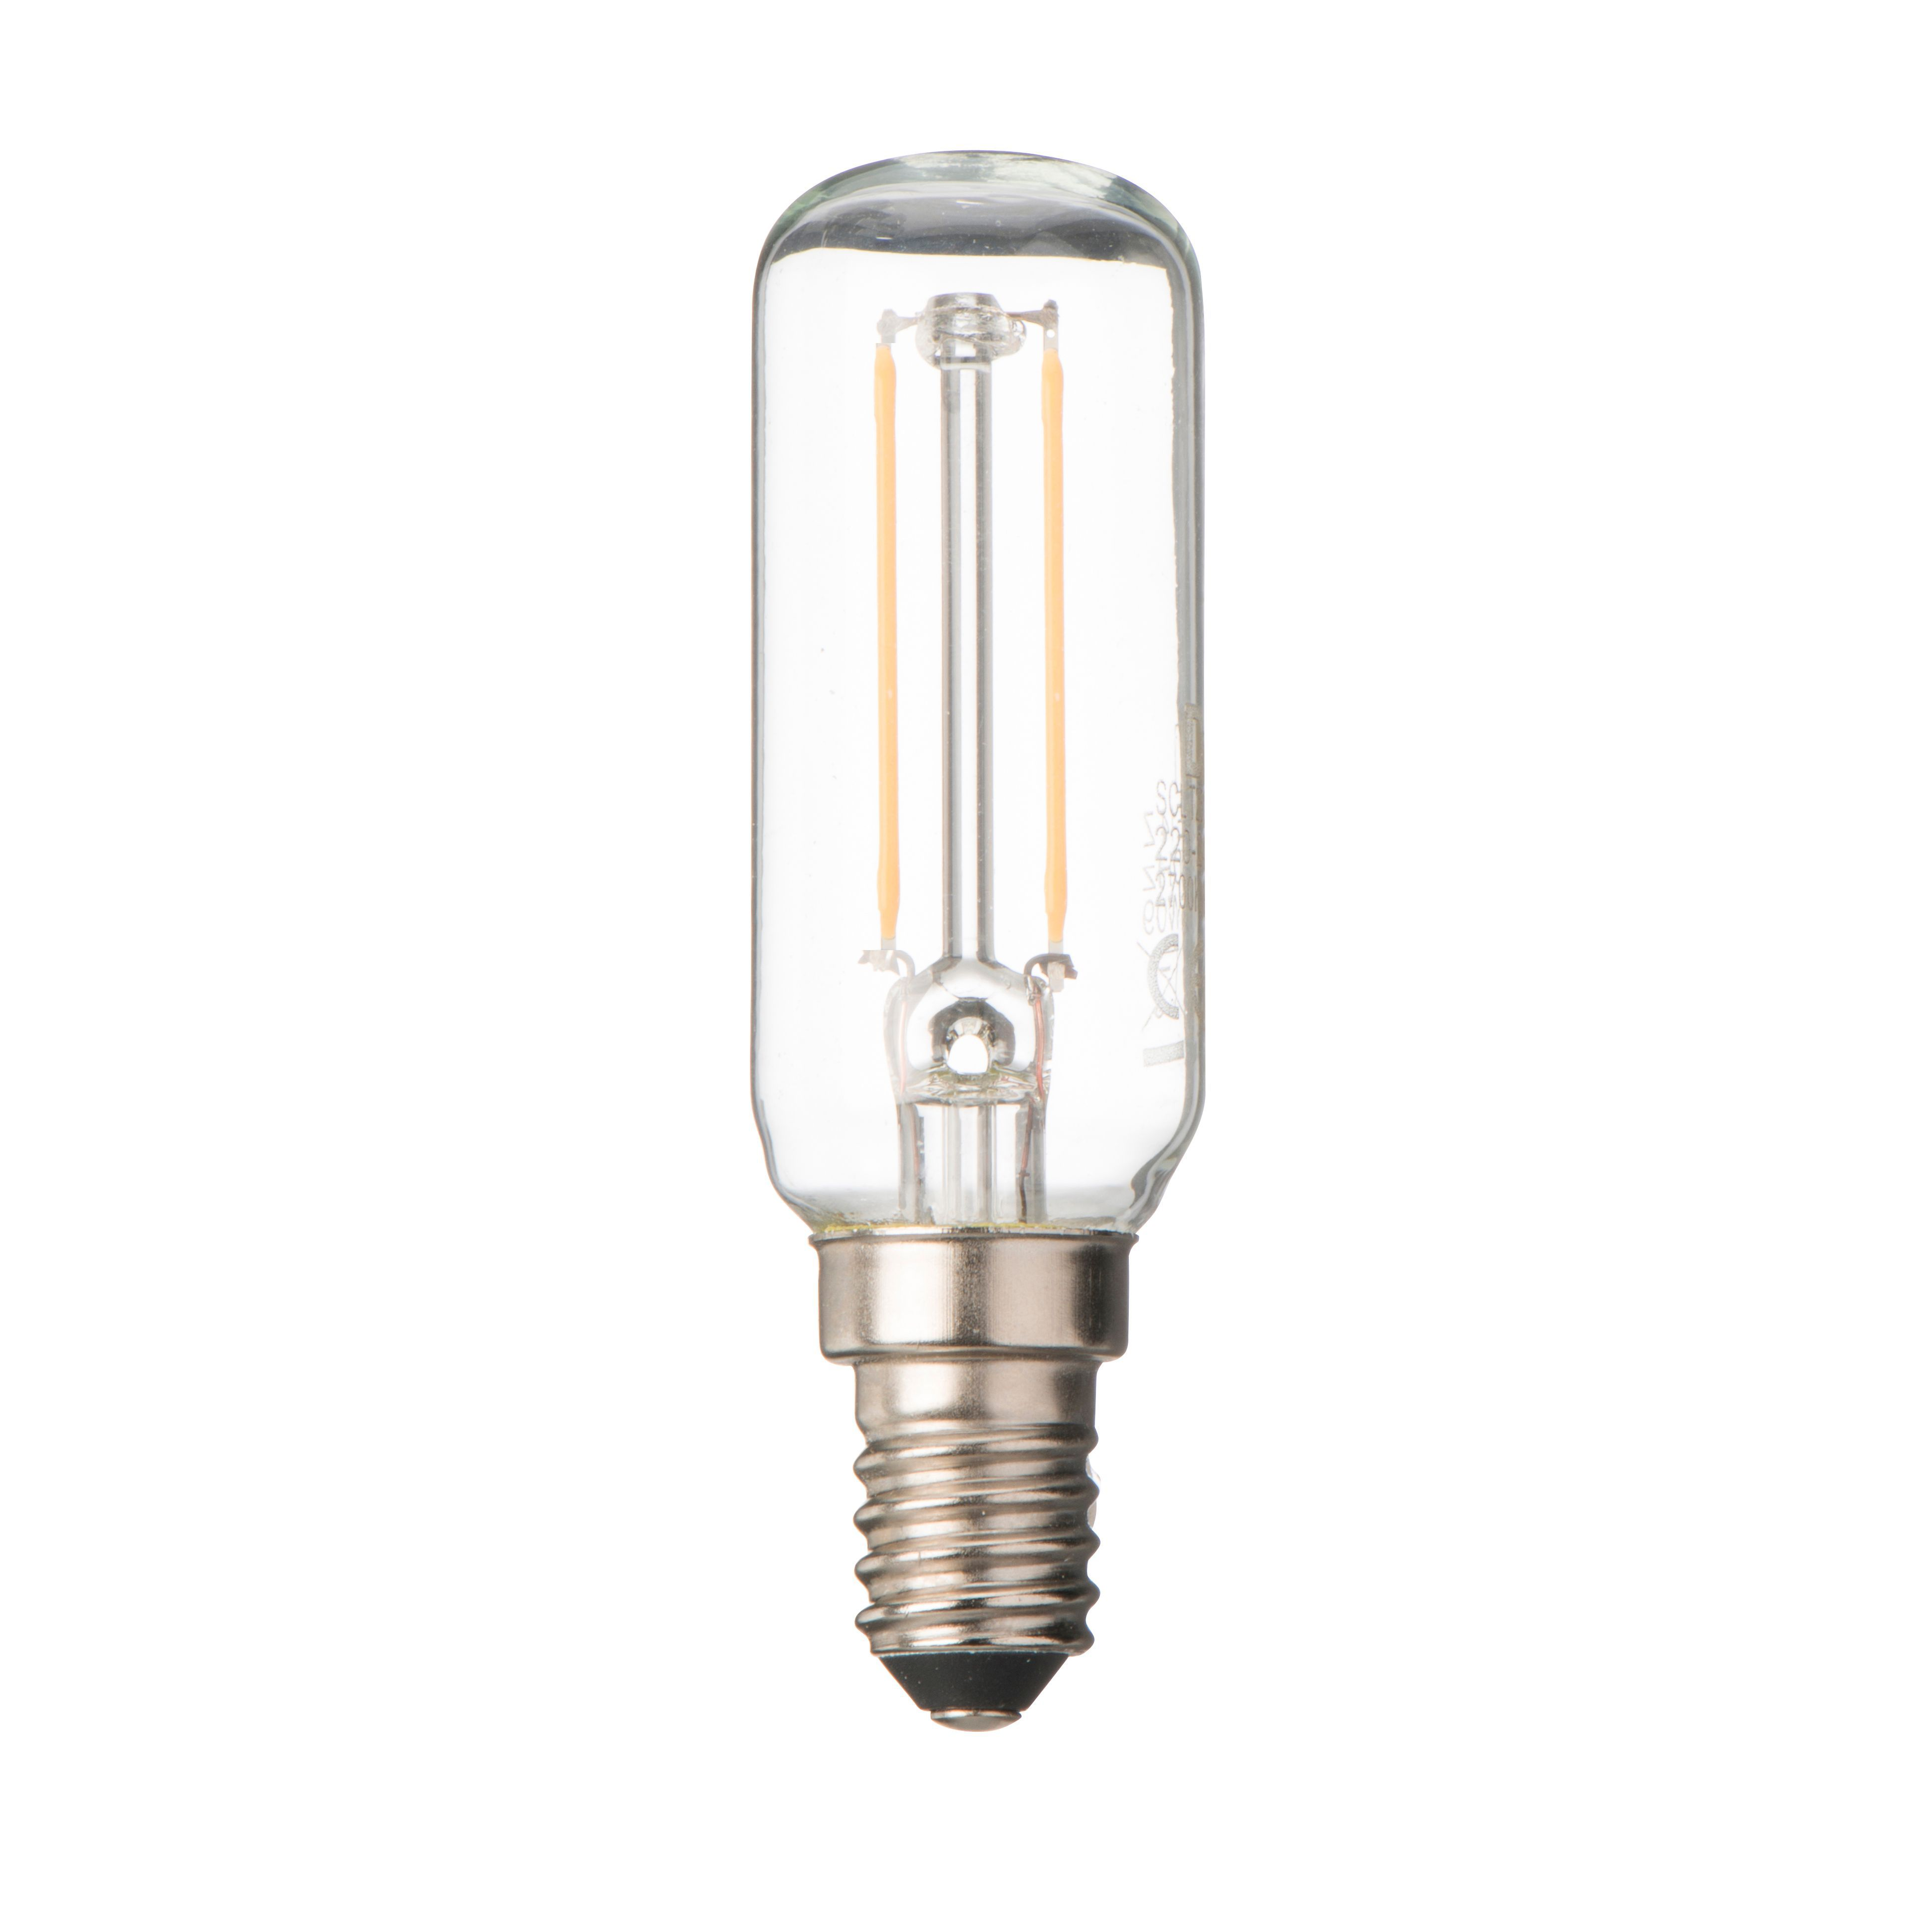 diall e14 2w led filament t26 light bulb departments diy at b q. Black Bedroom Furniture Sets. Home Design Ideas